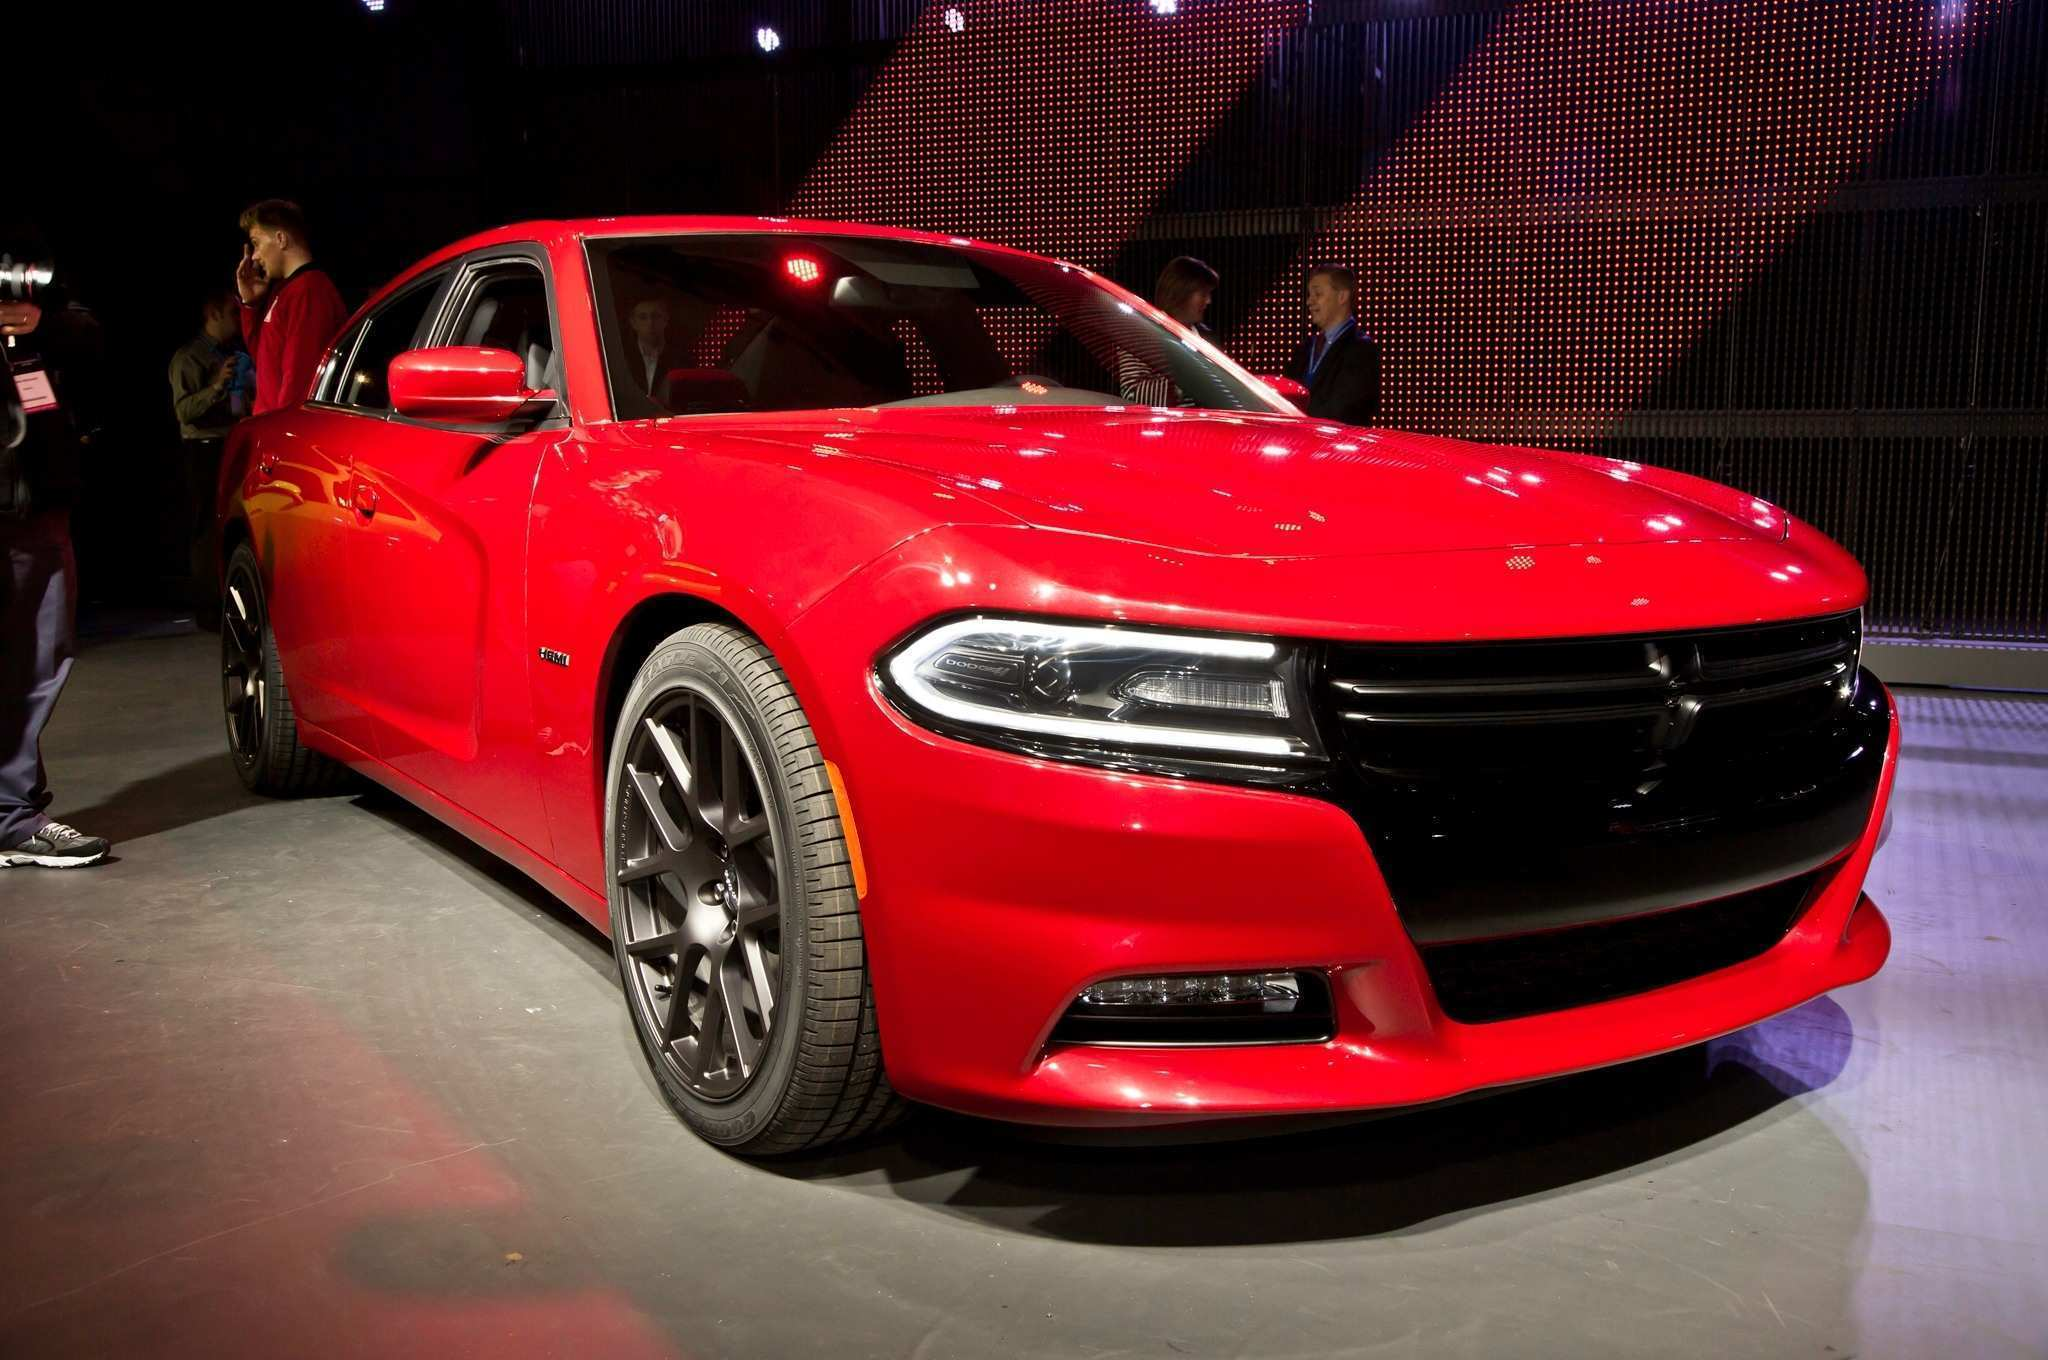 57 The Best 2019 Dodge Avenger Srt Redesign And Review